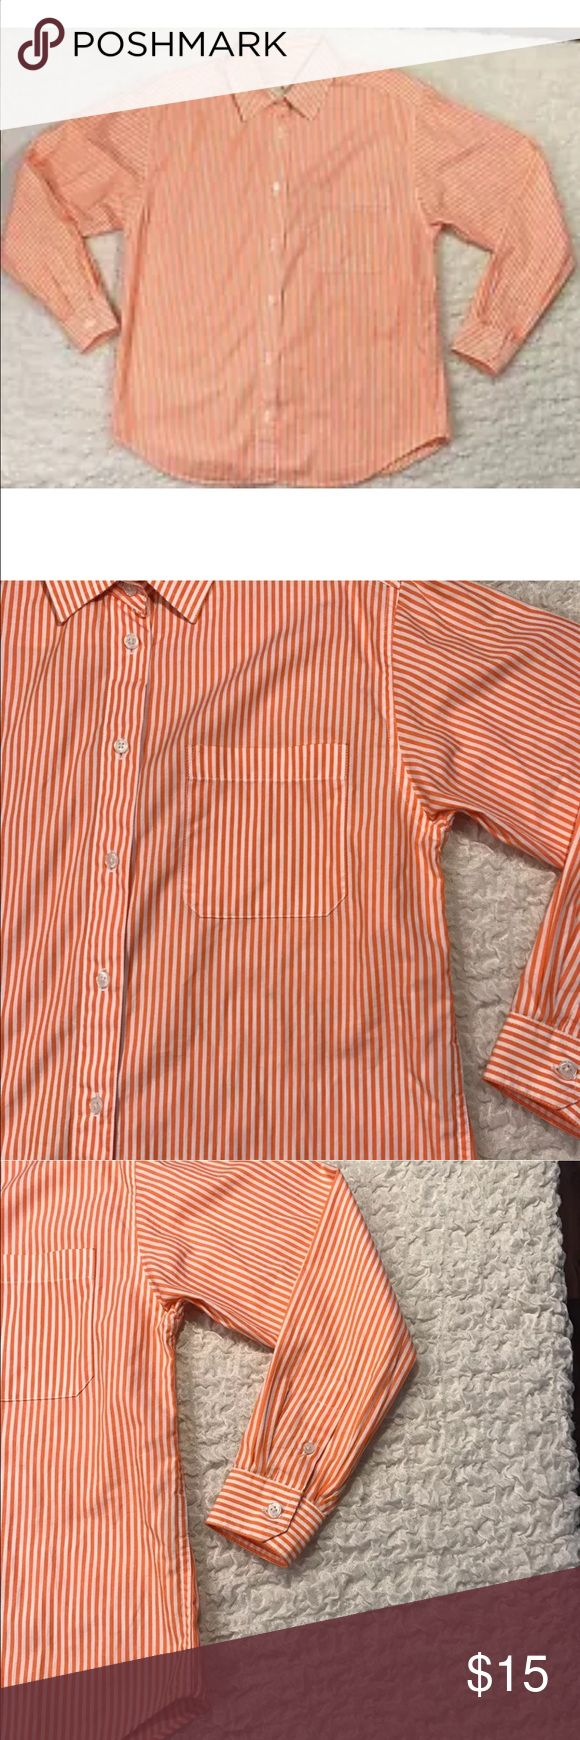 Talbots Petite Ladies PS Blouse Long Sleeve This shirt is in very Good Condition there is a tiny dot on the inside collar which will not be seen when the top is worn. Look At Photo. Orange White Striped 100% Cotton Button Down Long Sleeve Talbots  Tops Button Down Shirts